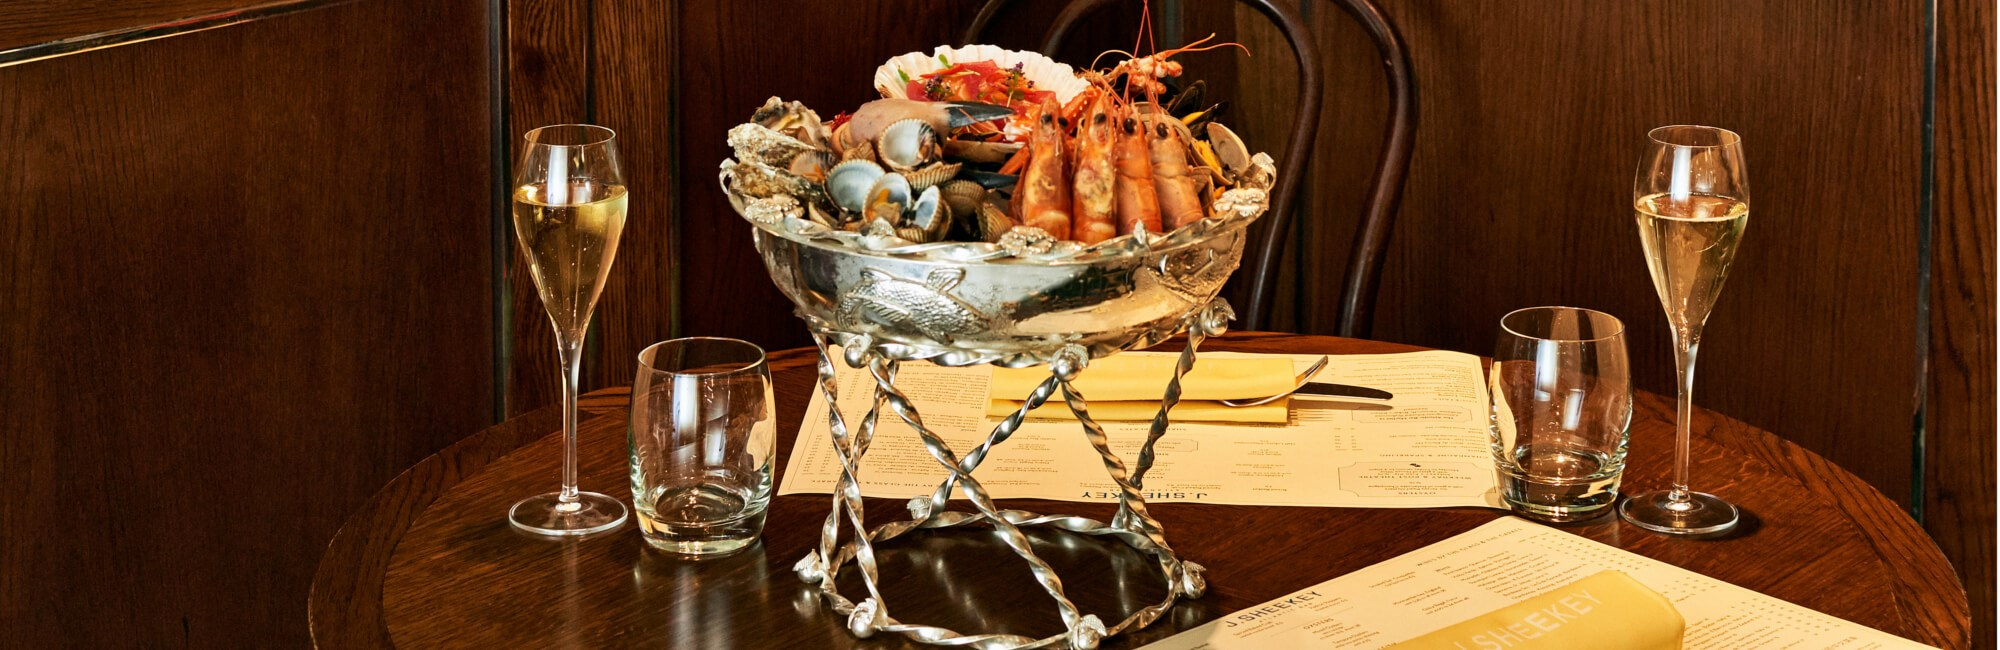 Seafood and Champagne at J Sheekey Atlantic Bar in London's West End